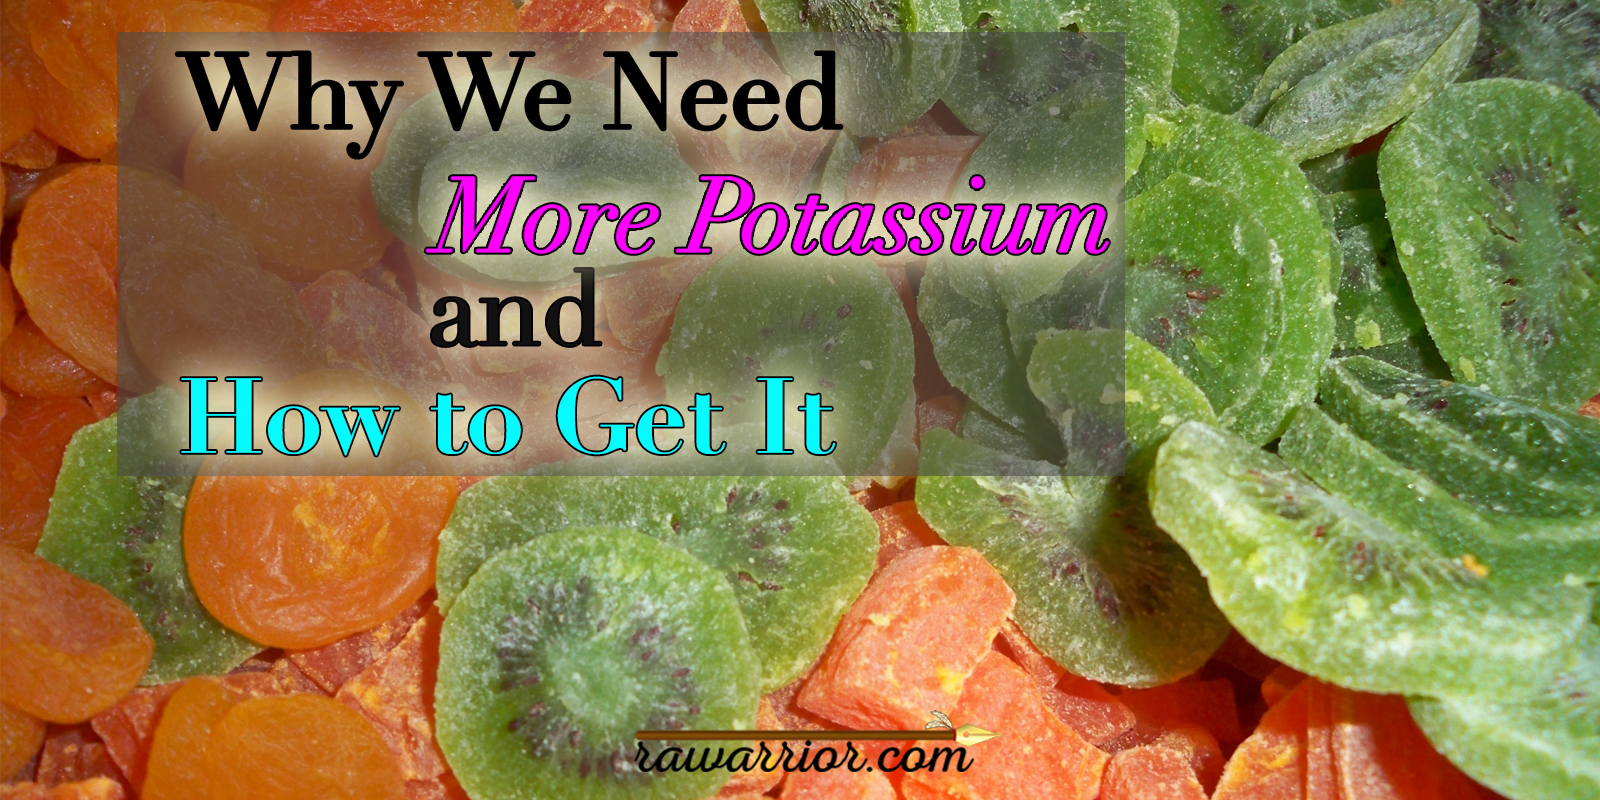 Why We Need More Potassium and How to Get It